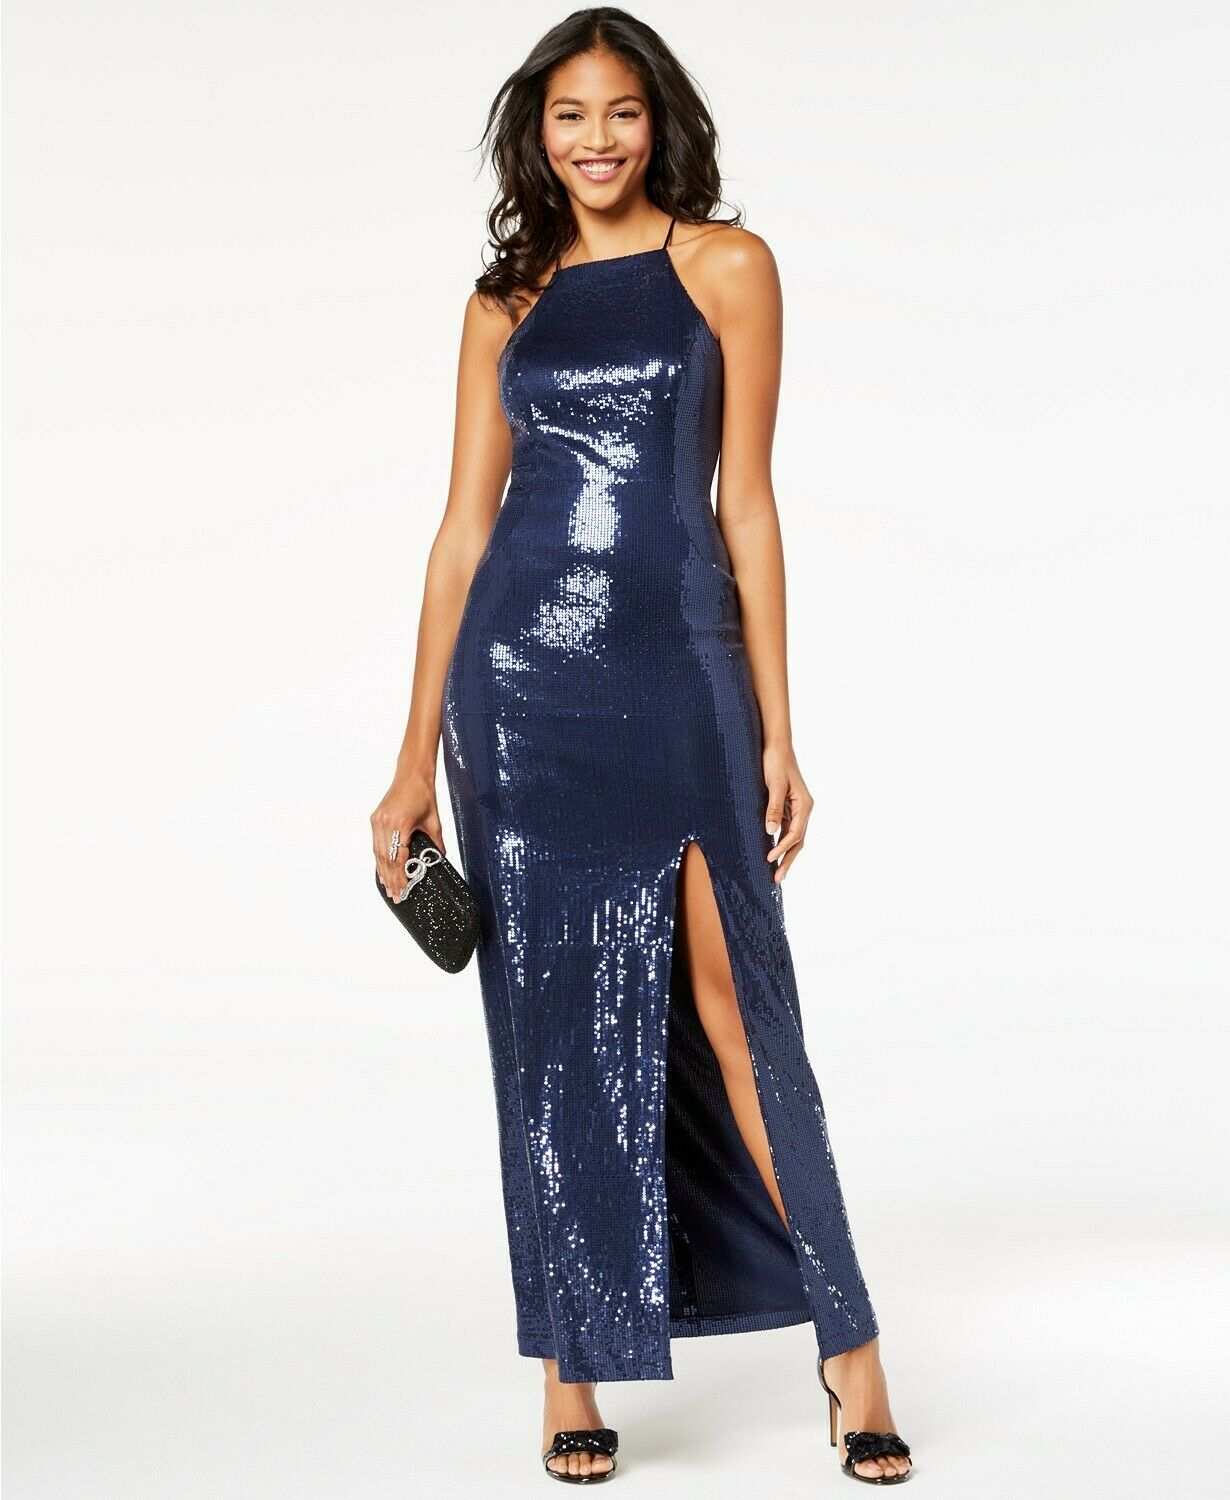 Teeze Me Juniors Sequined Illusion Gown Größe 1 Navy Blau Prom Dress  -NWT